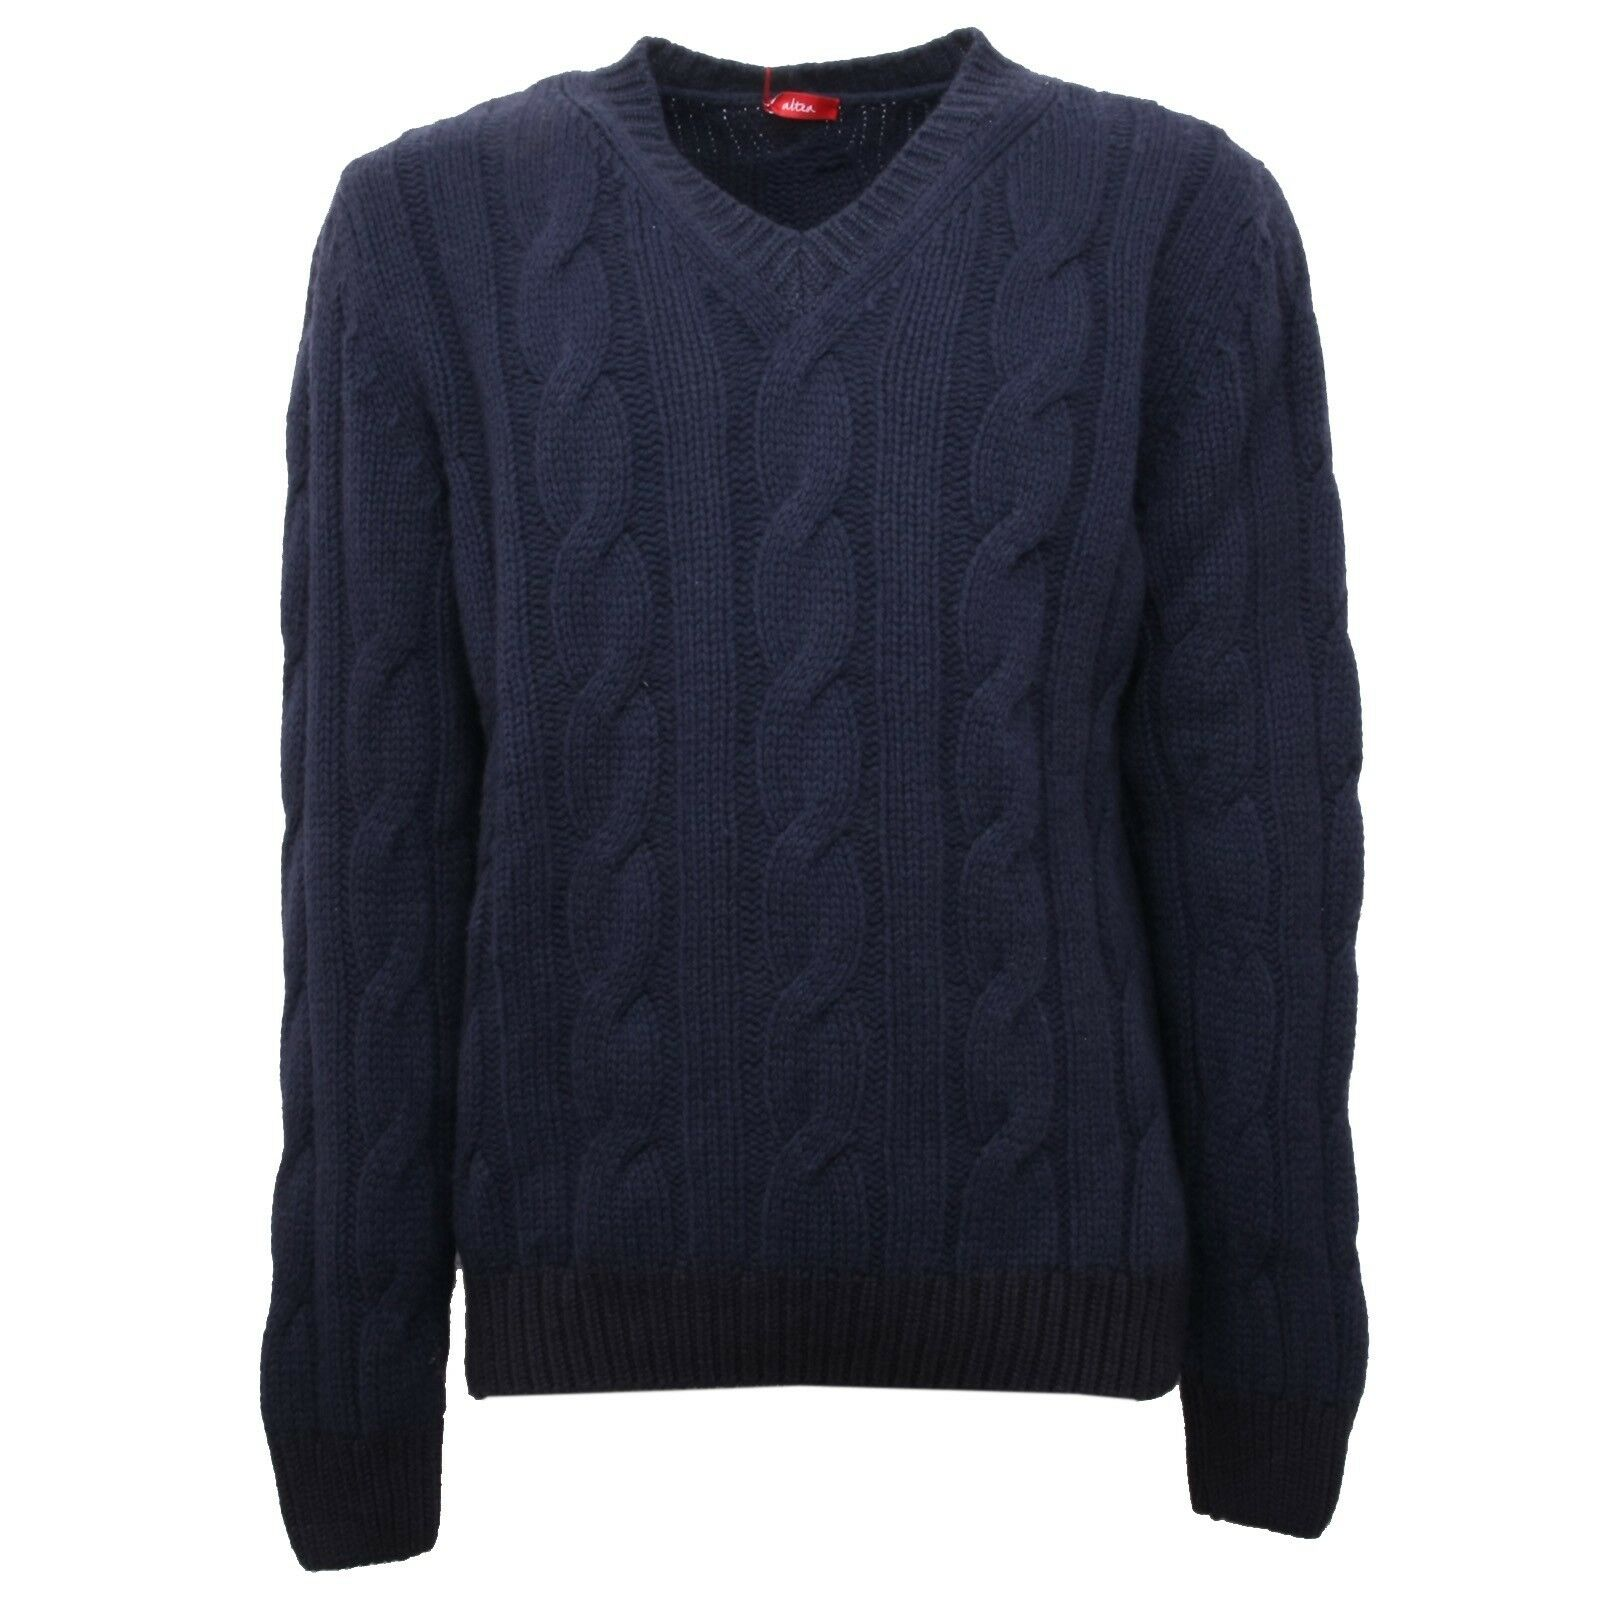 B5201 maglione uomo ALTEA lana blu sweater men